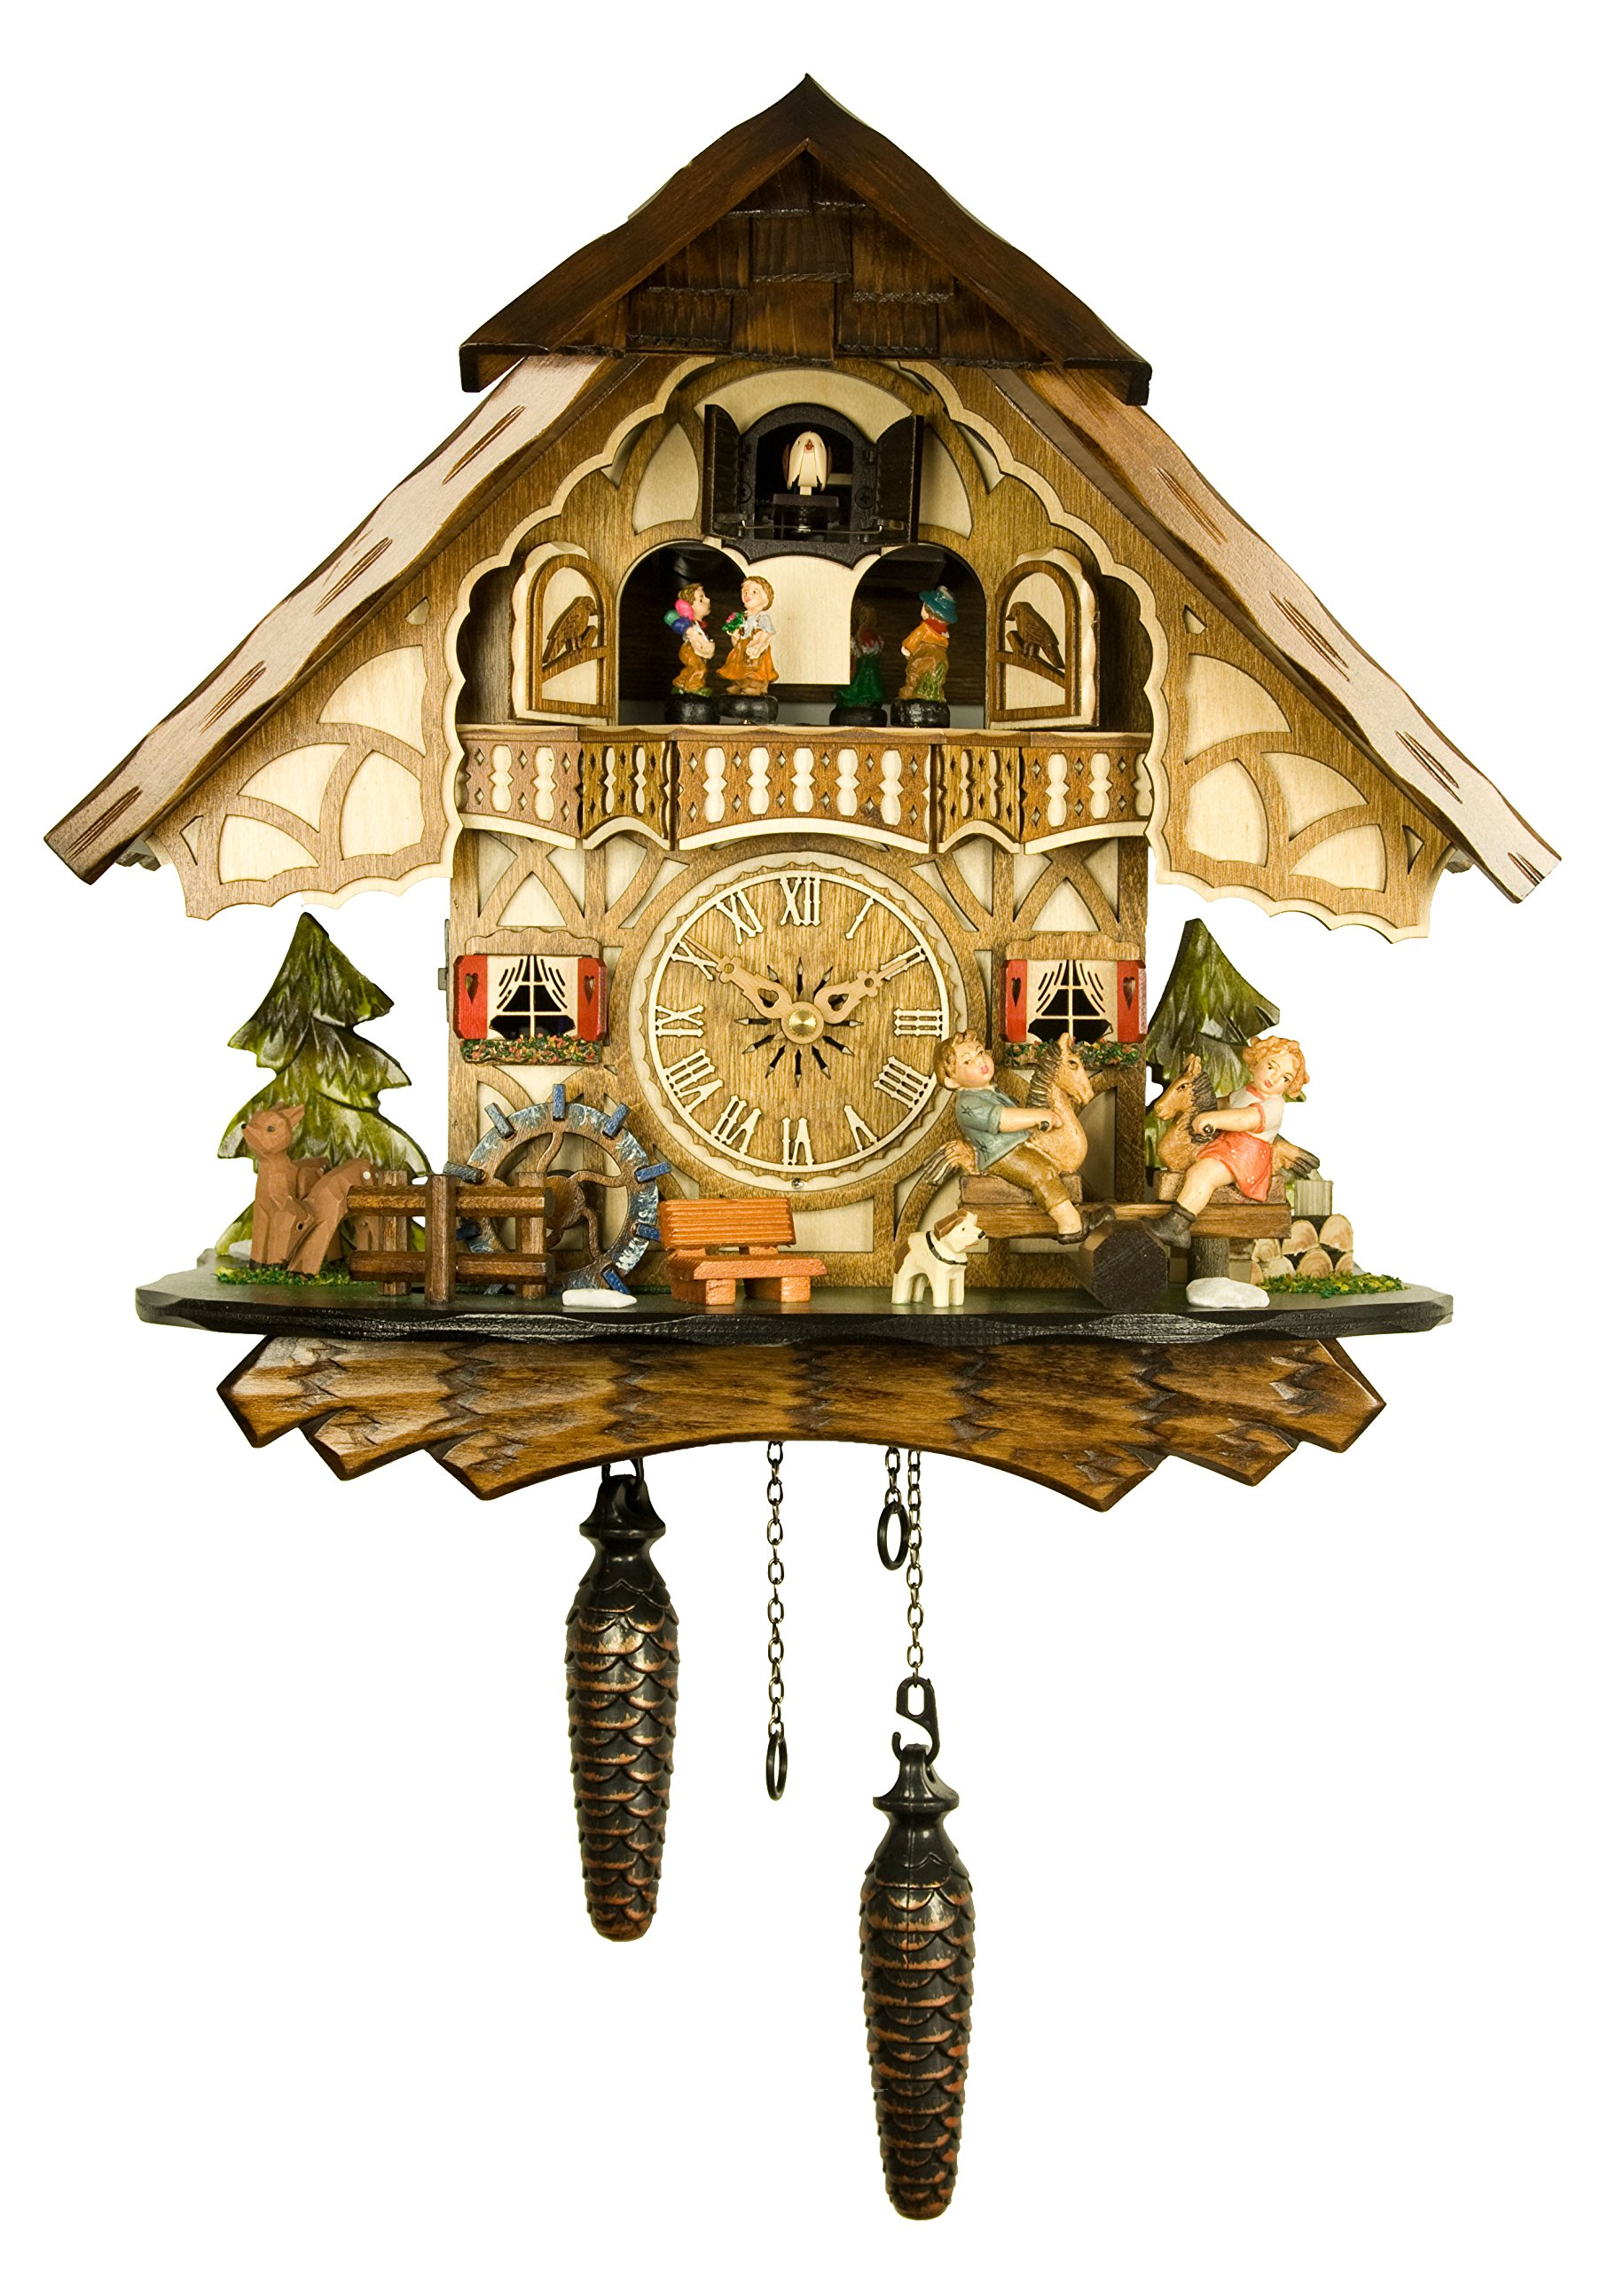 Engstler Quartz Cuckoo Clock - The Merry Children